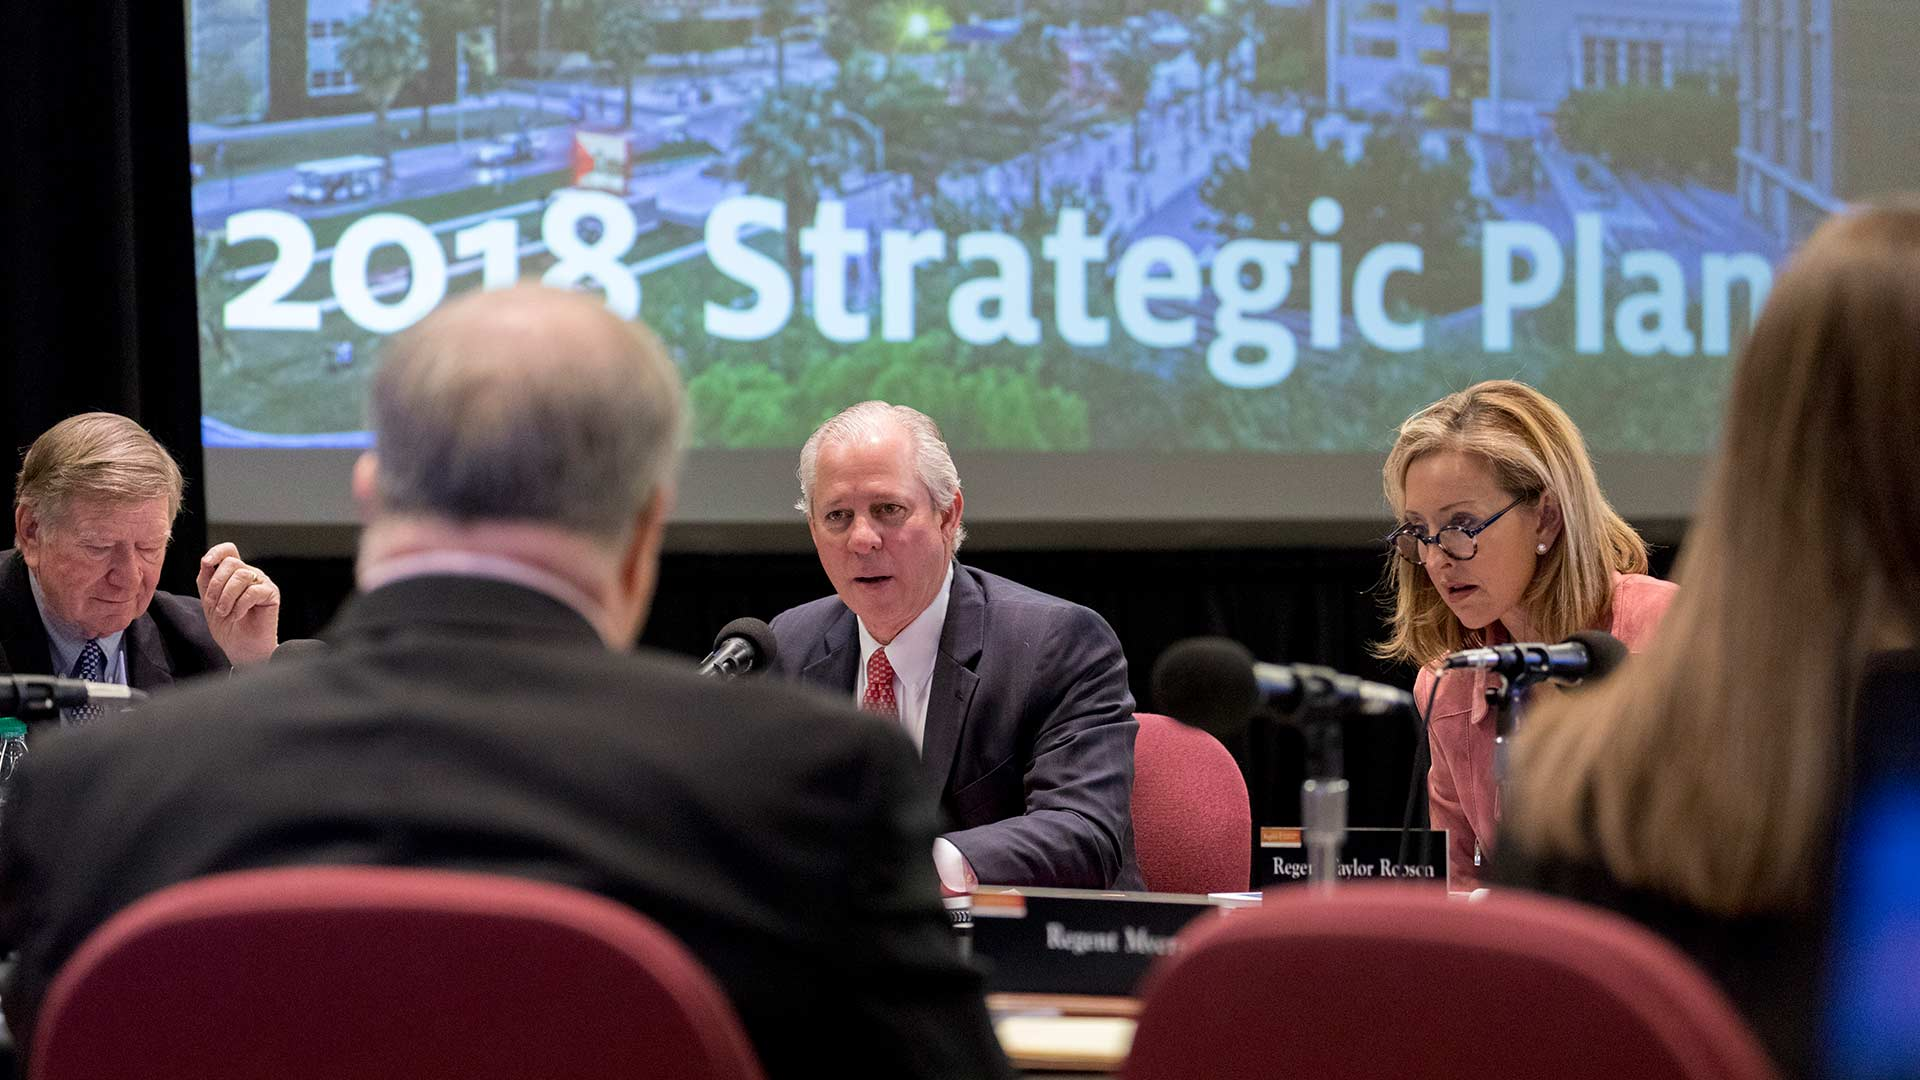 UA President Robert Robbins presents the 2018 Strategic Plan to the Arizona Board of Regents.